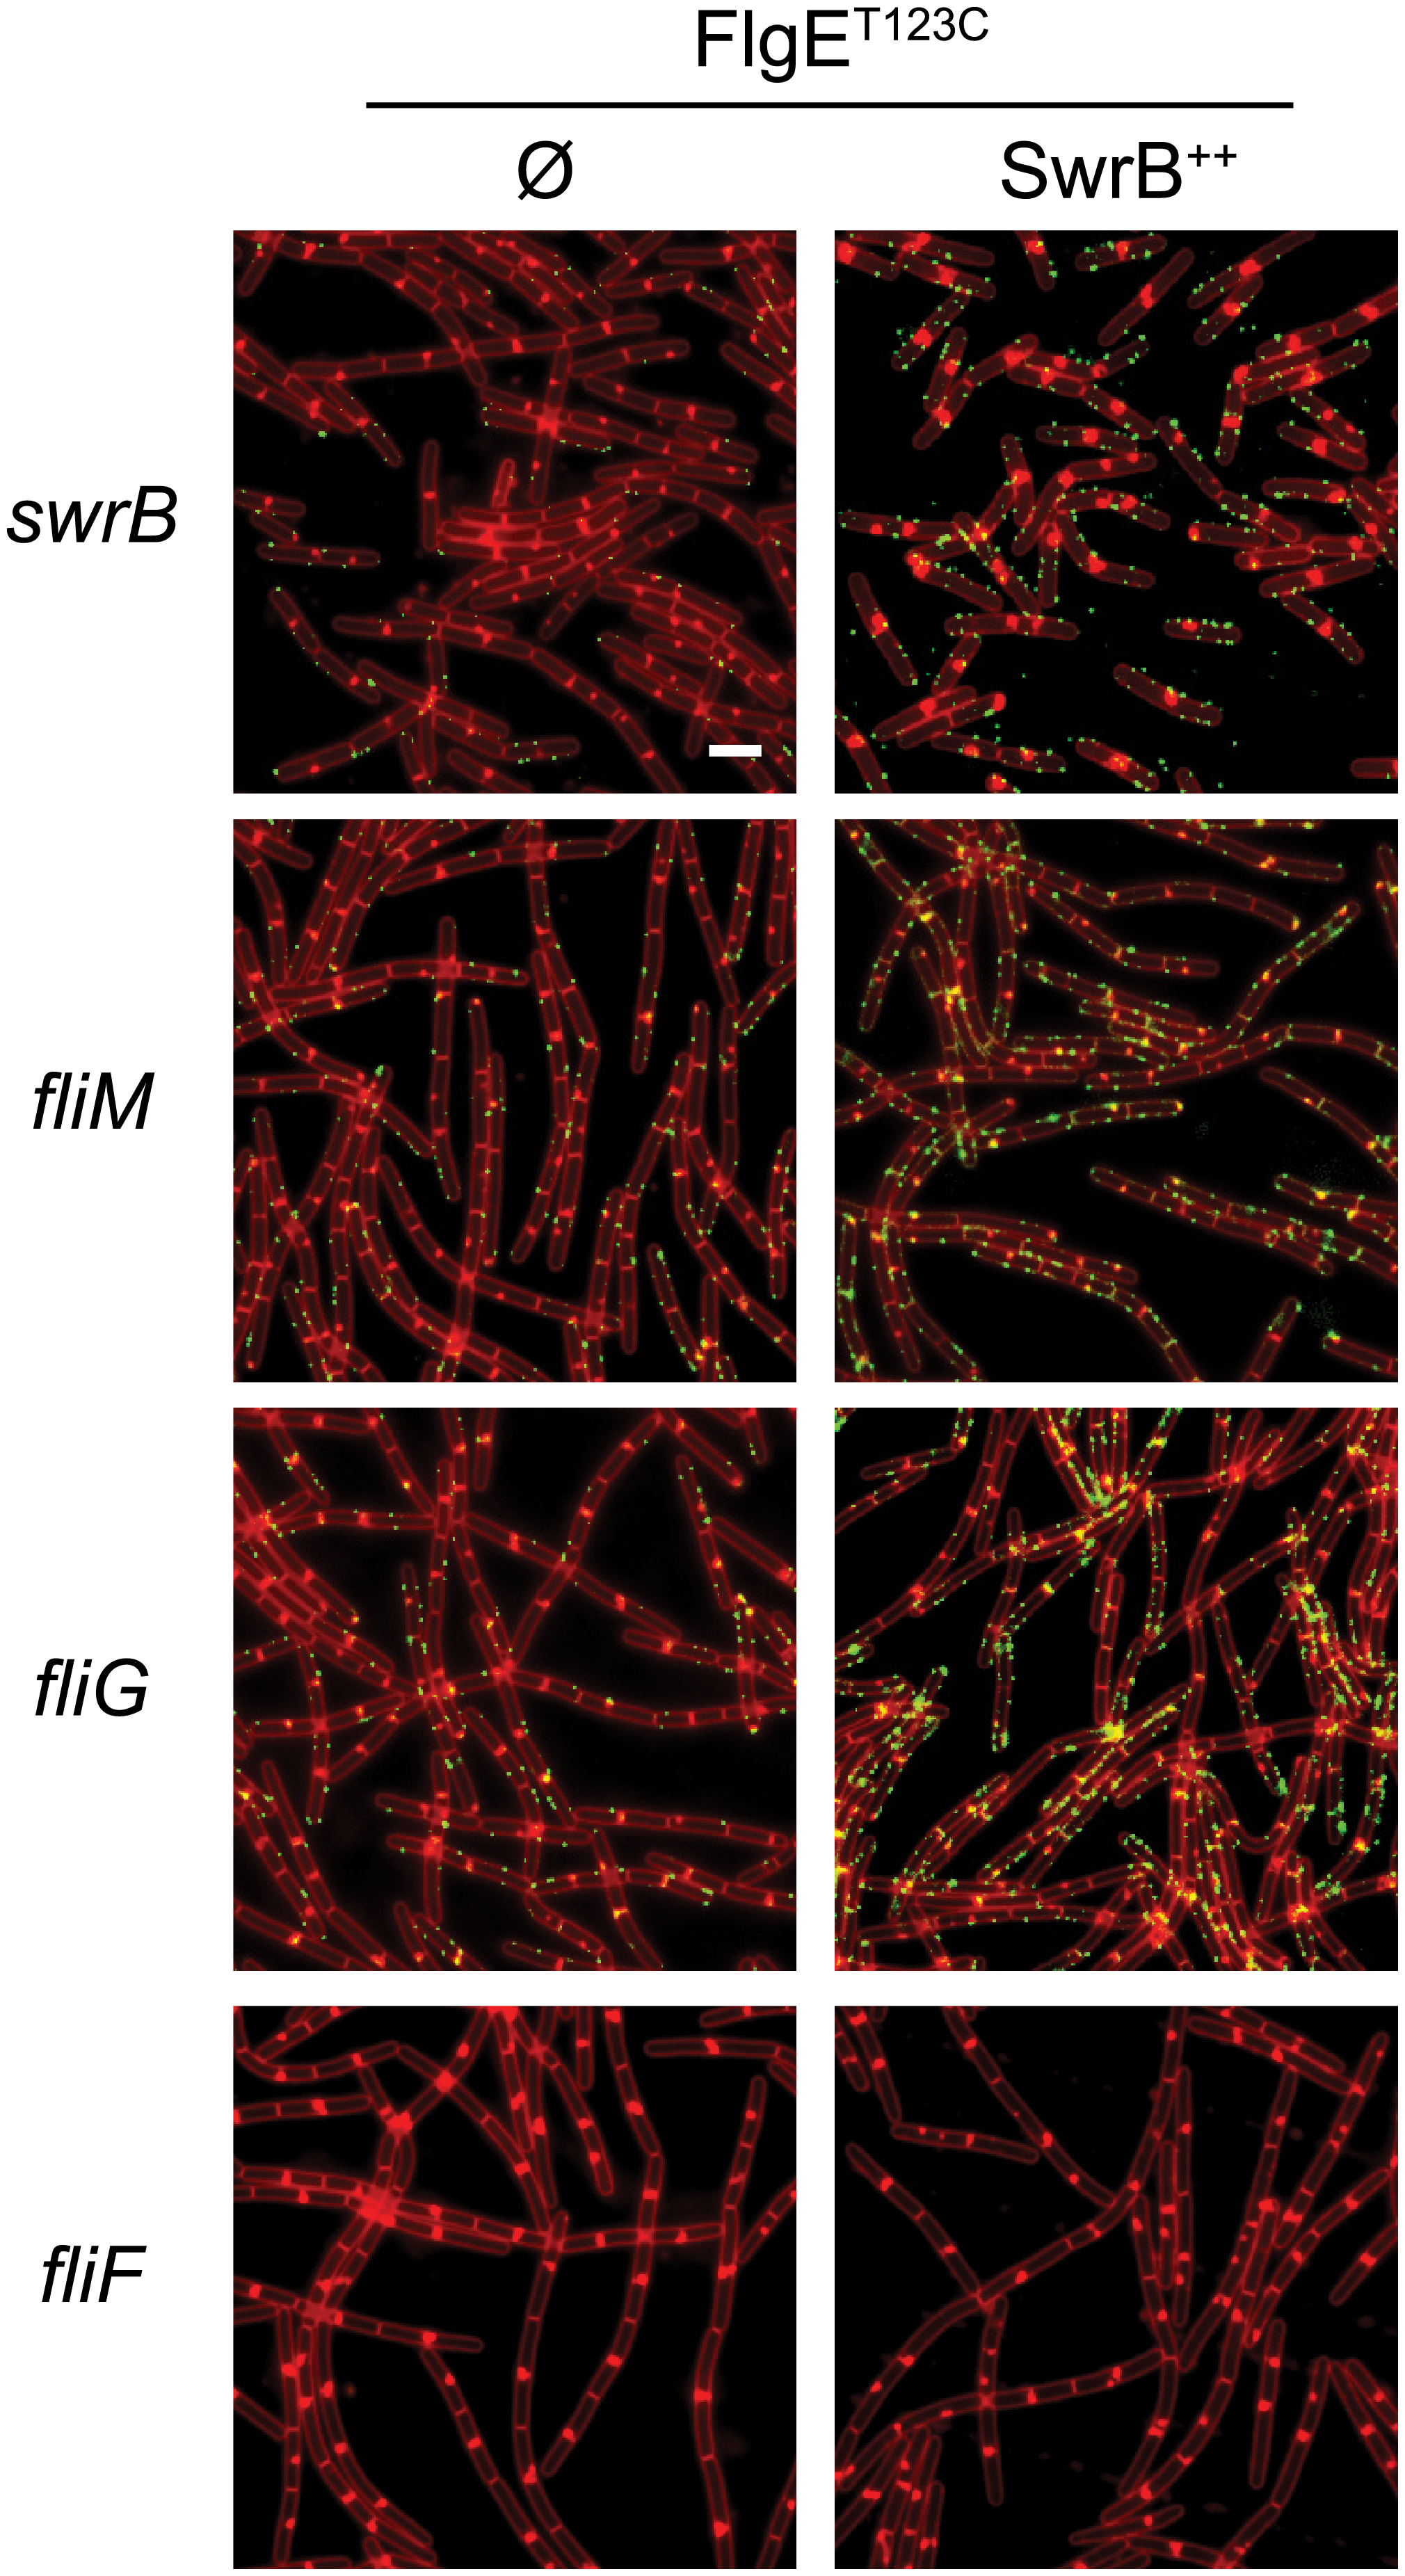 C-ring mutants phenocopy SwrB mutants for hook synthesis and SwrB overexpression bypasses C-ring defects.